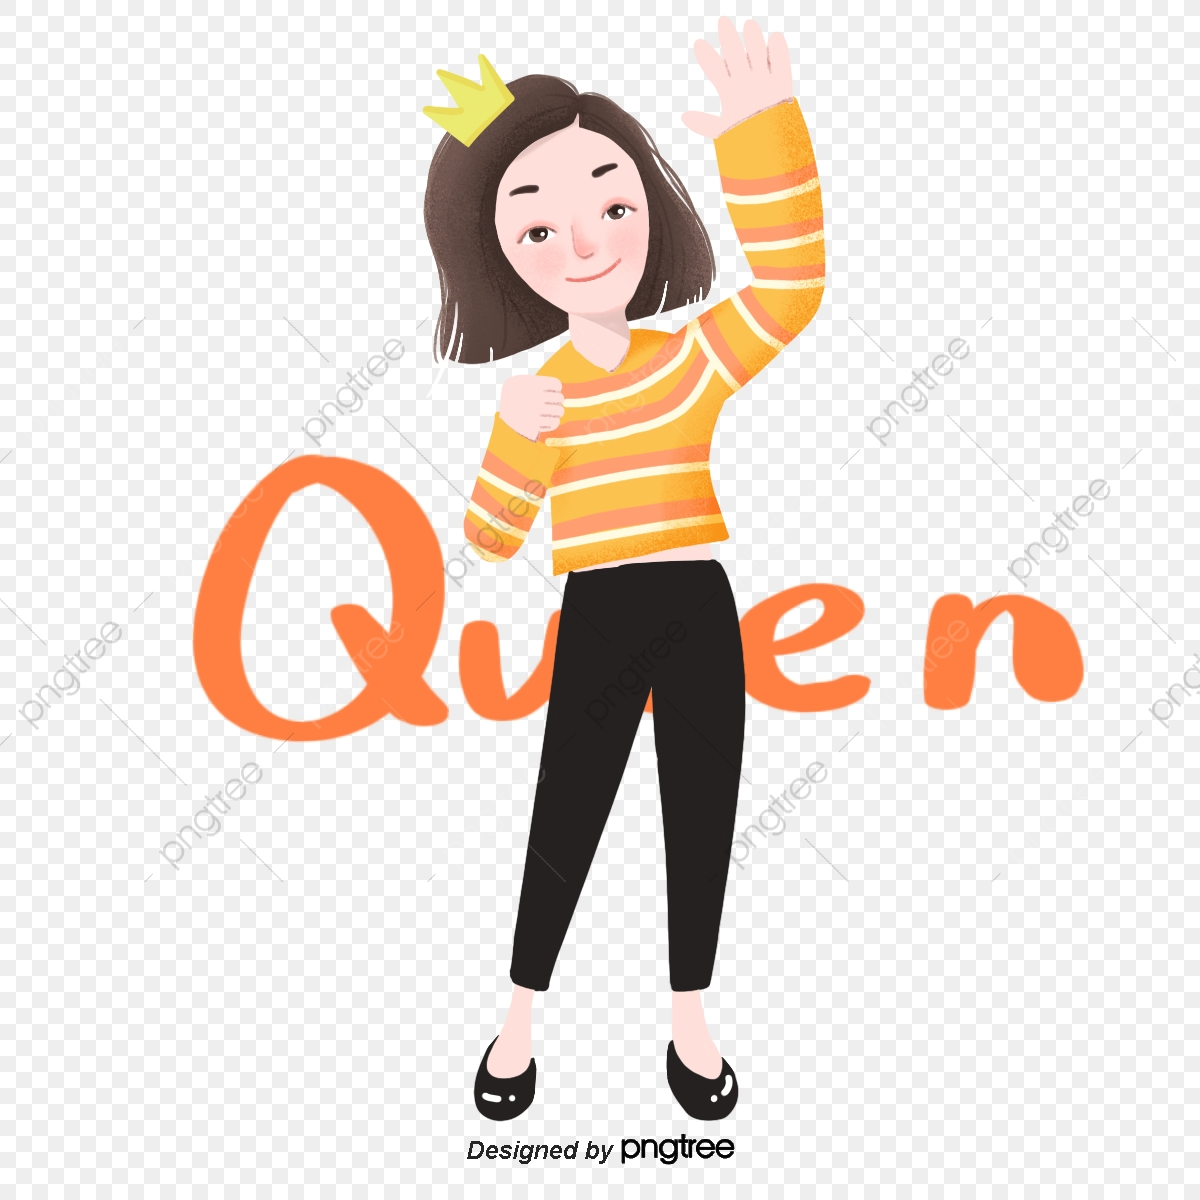 Crown Girls Wave Illustrations On Queens Day Girl Queen Girl Student Png Transparent Clipart Image And Psd File For Free Download Buy cheap princess crown online from china today! https pngtree com freepng crown girls wave illustrations on queens day 3869365 html